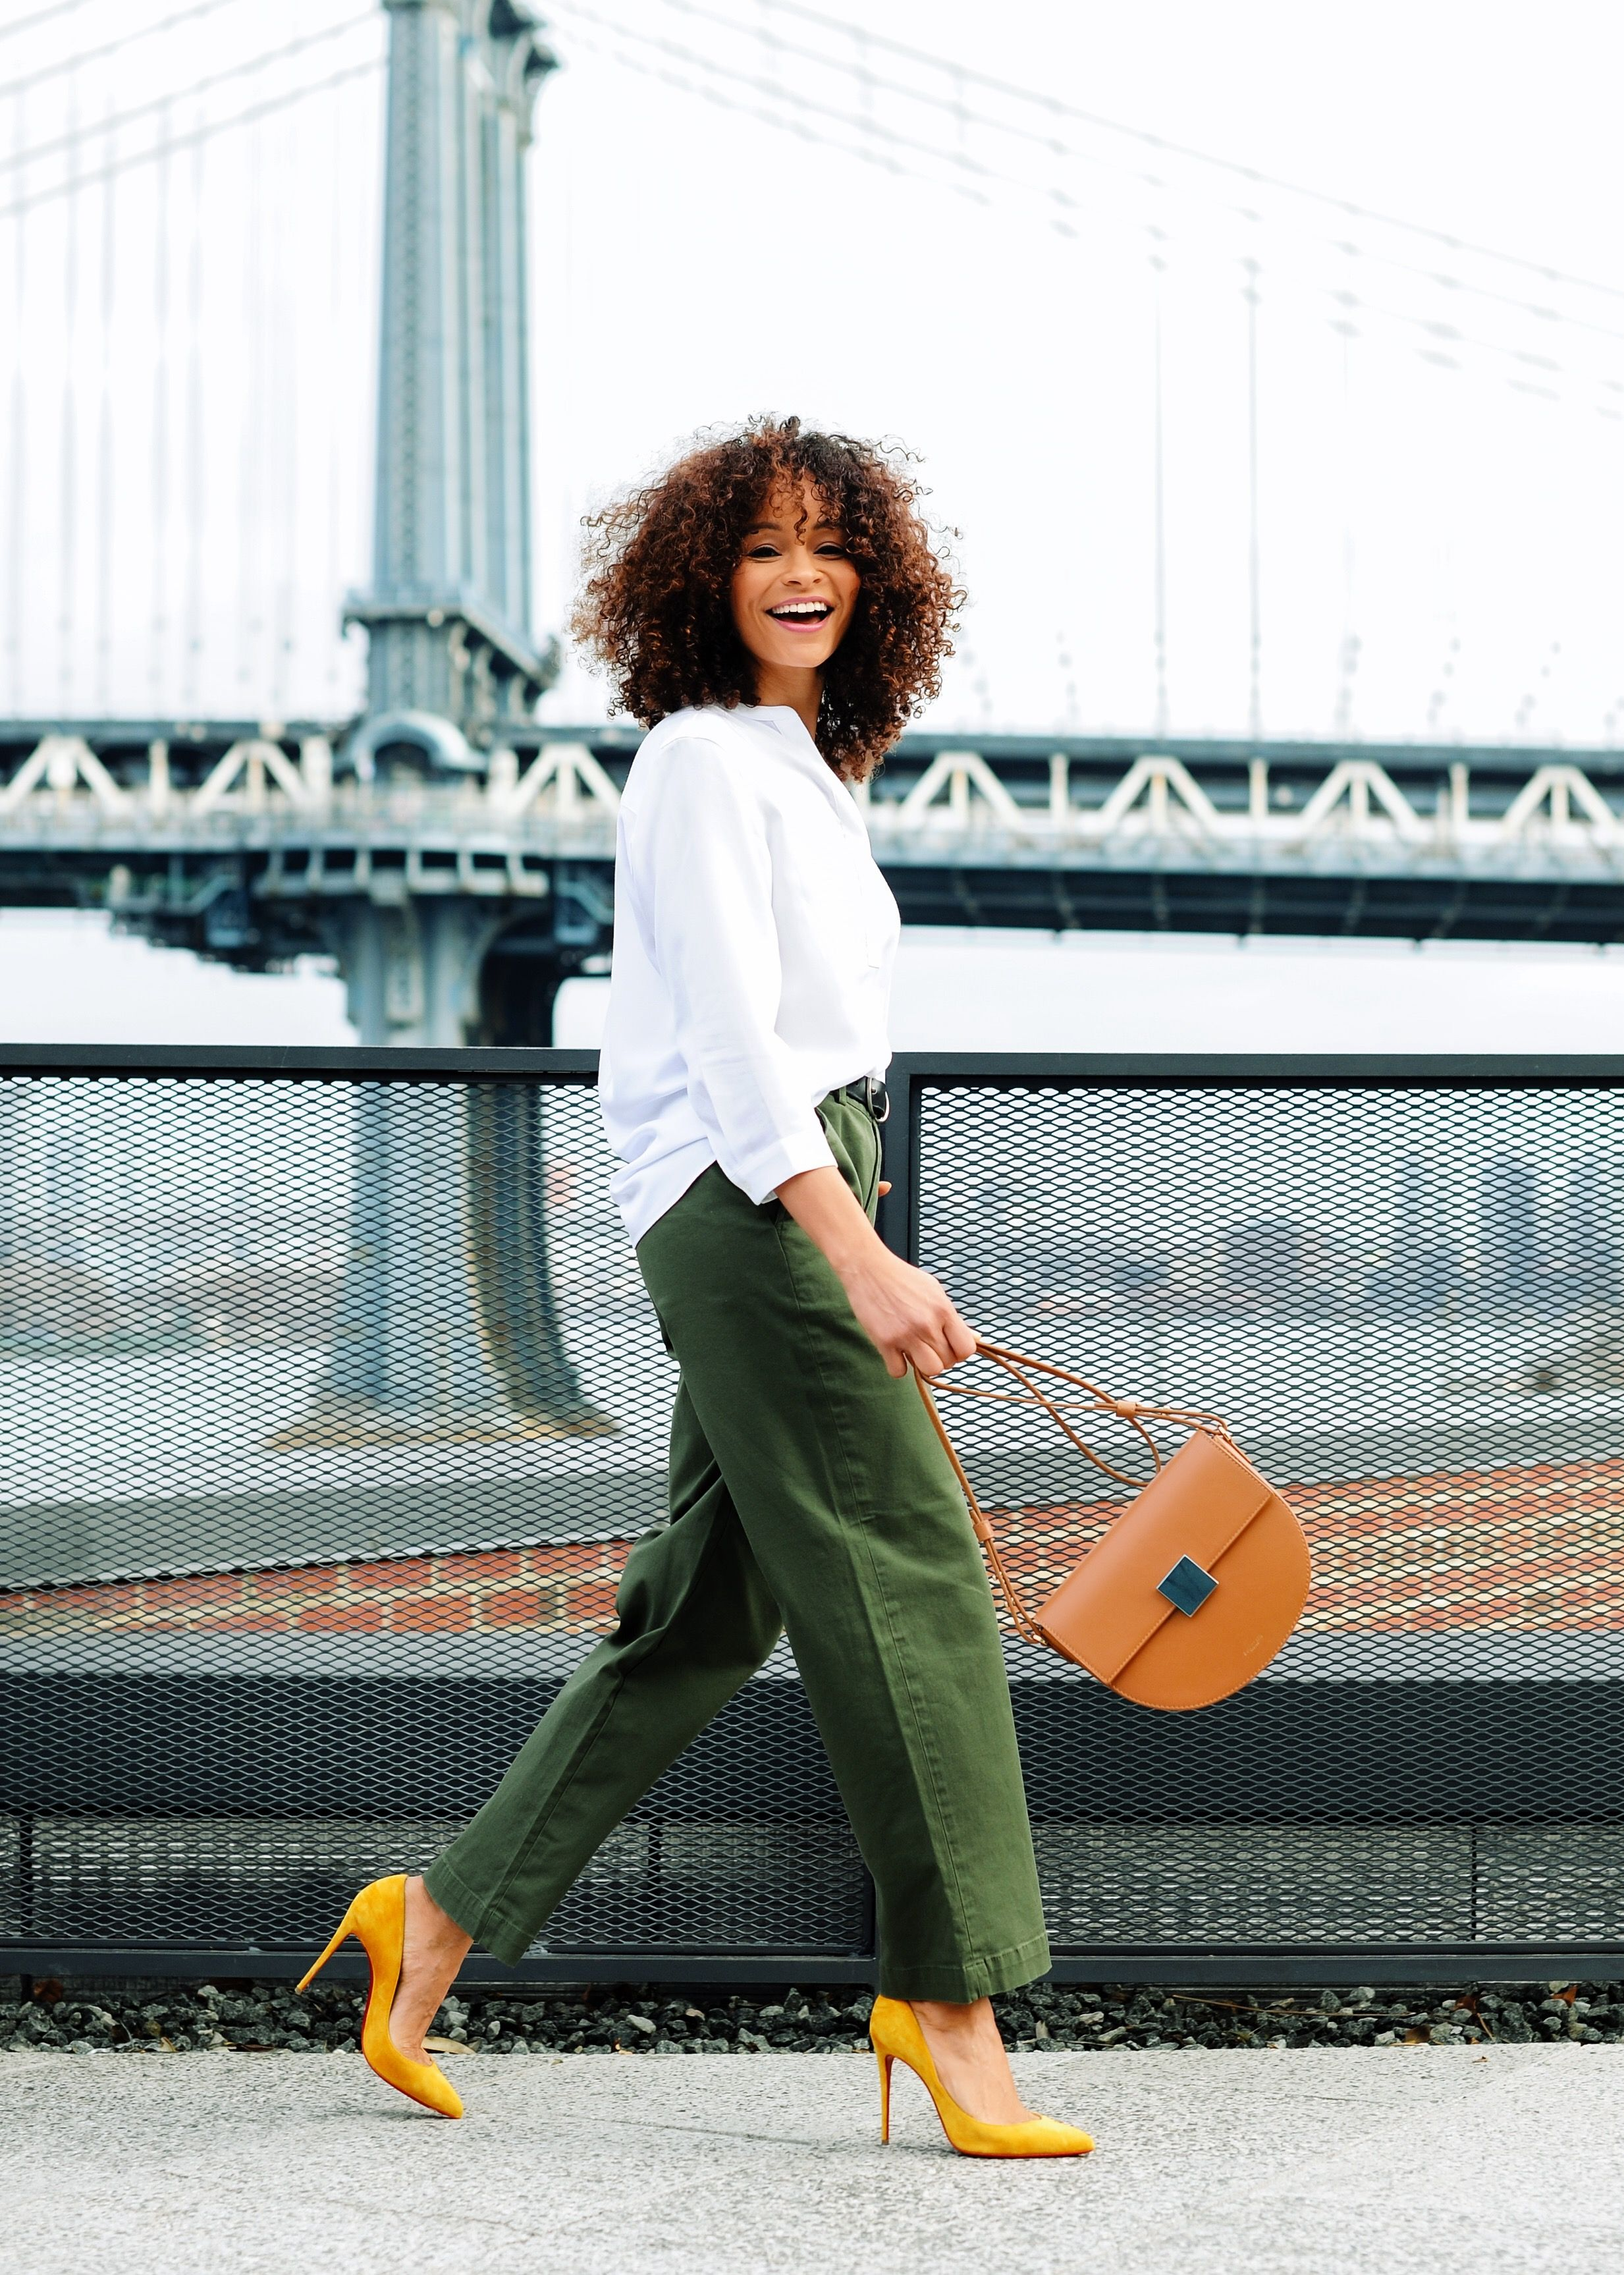 How To Look Effortlessly Chic When You're Crazy Busy at Scout The City. #fashion #chic #style